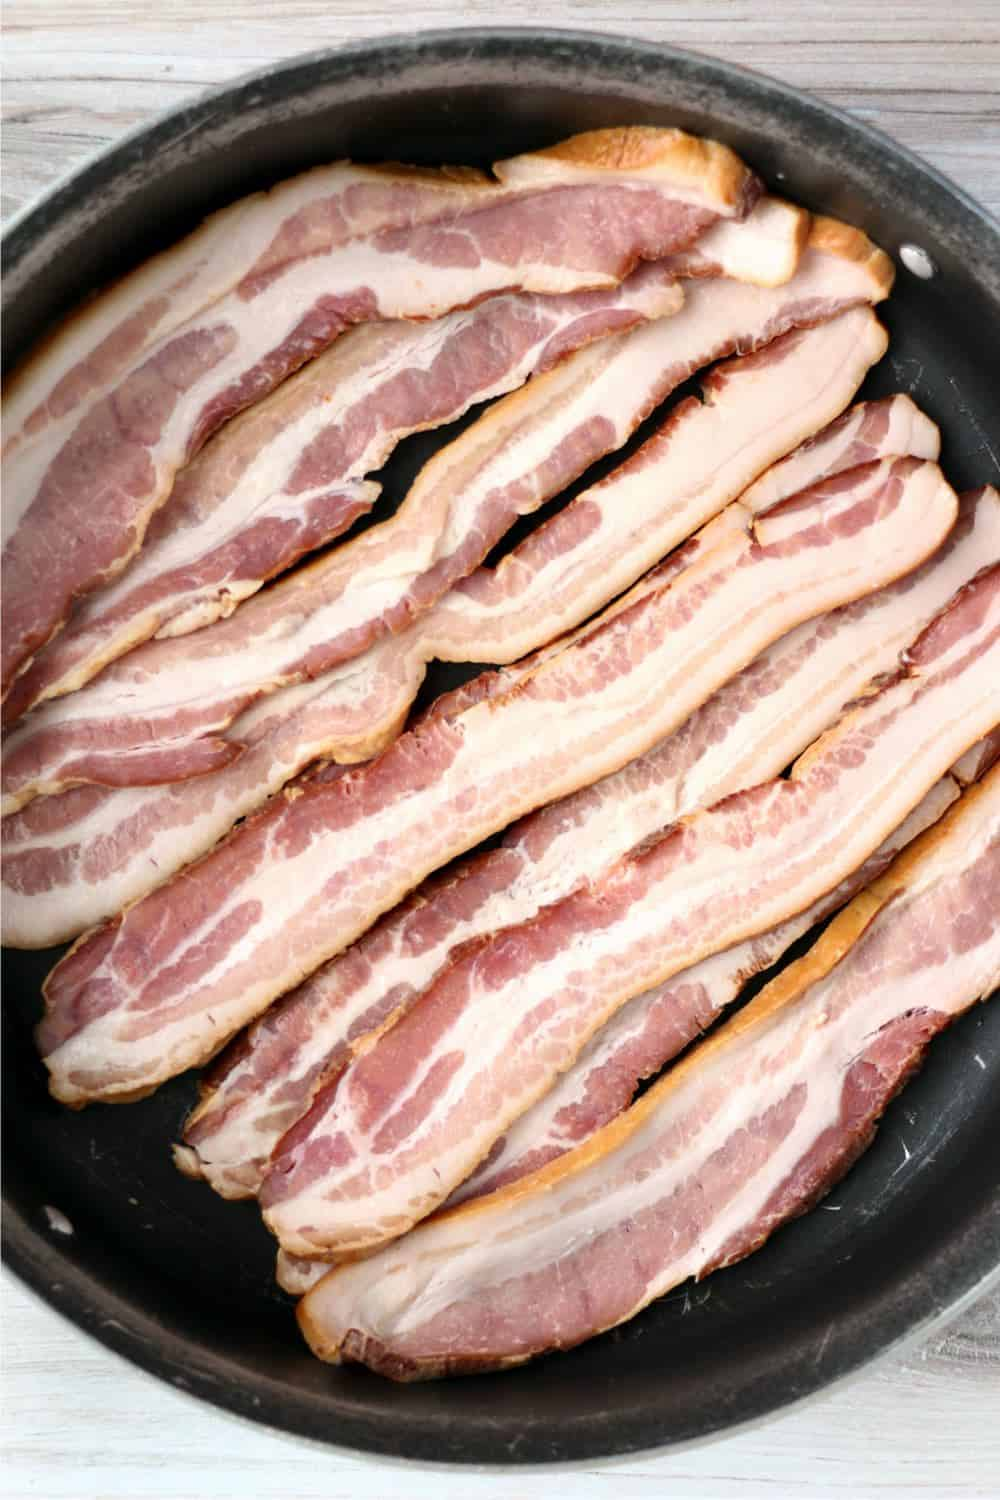 Strips of bacon cooking in a skillet